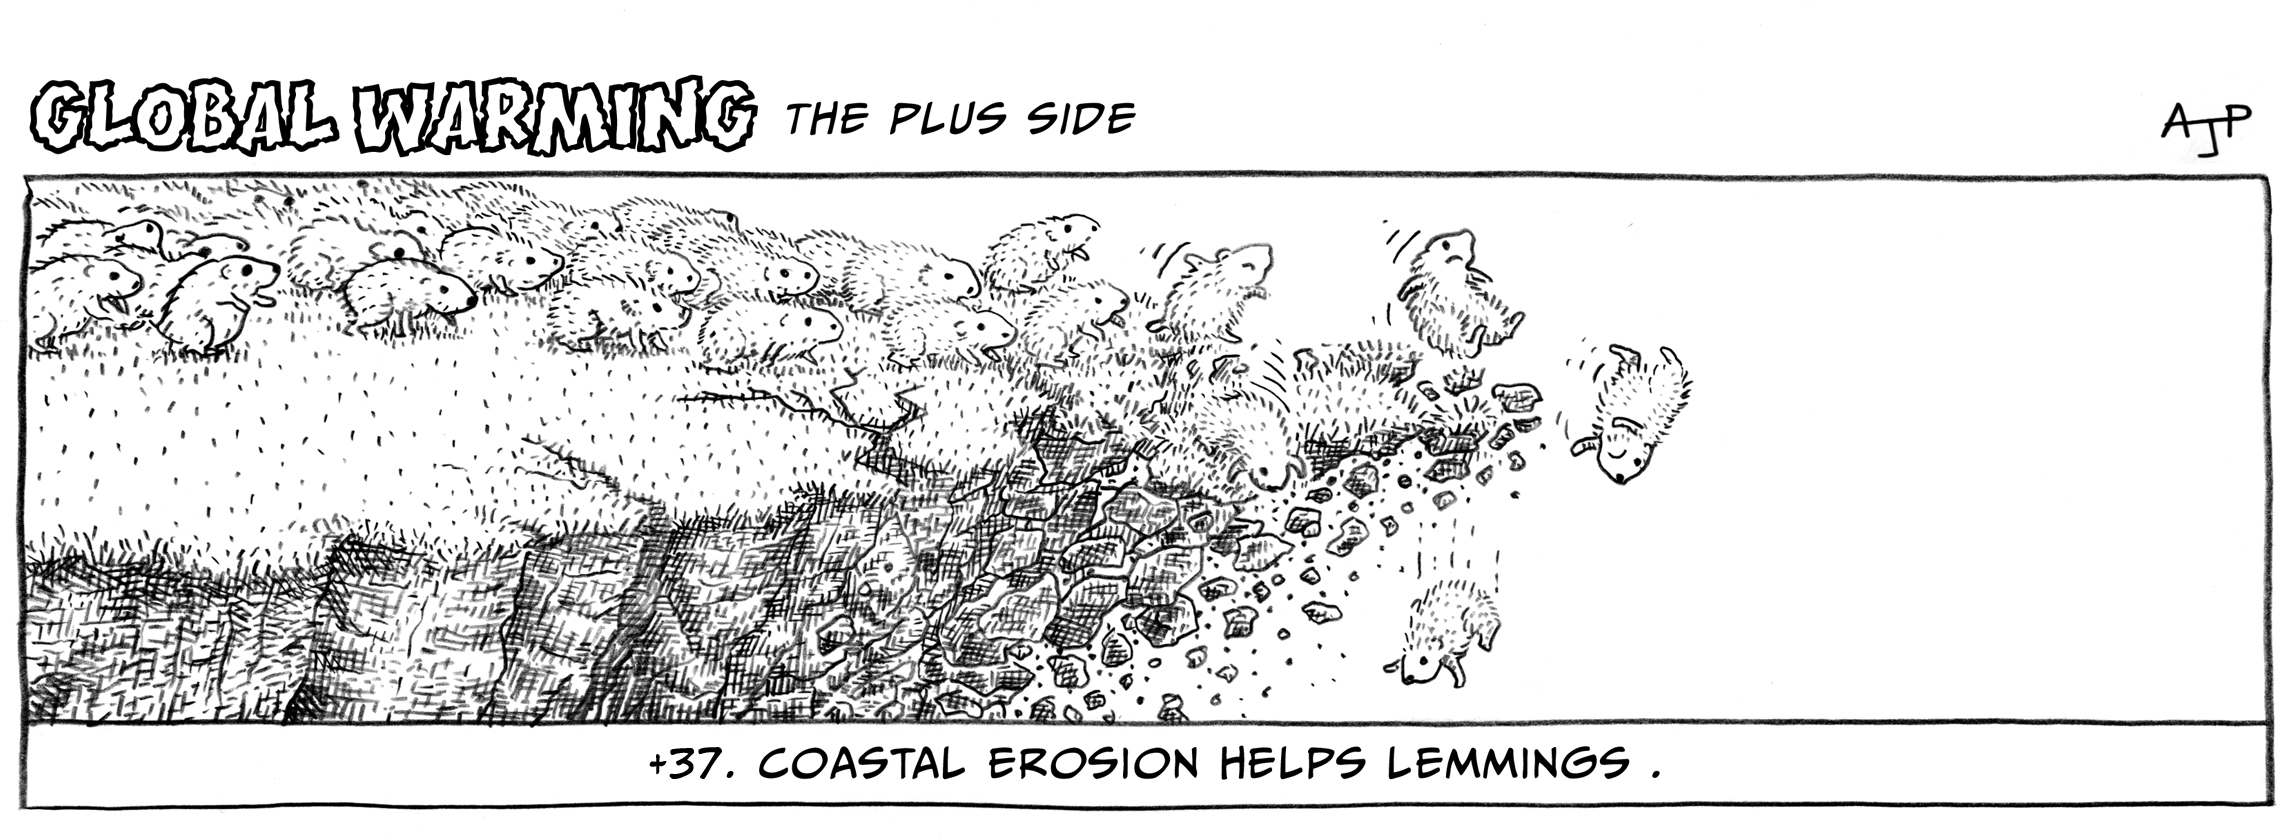 Coastal erosion helps